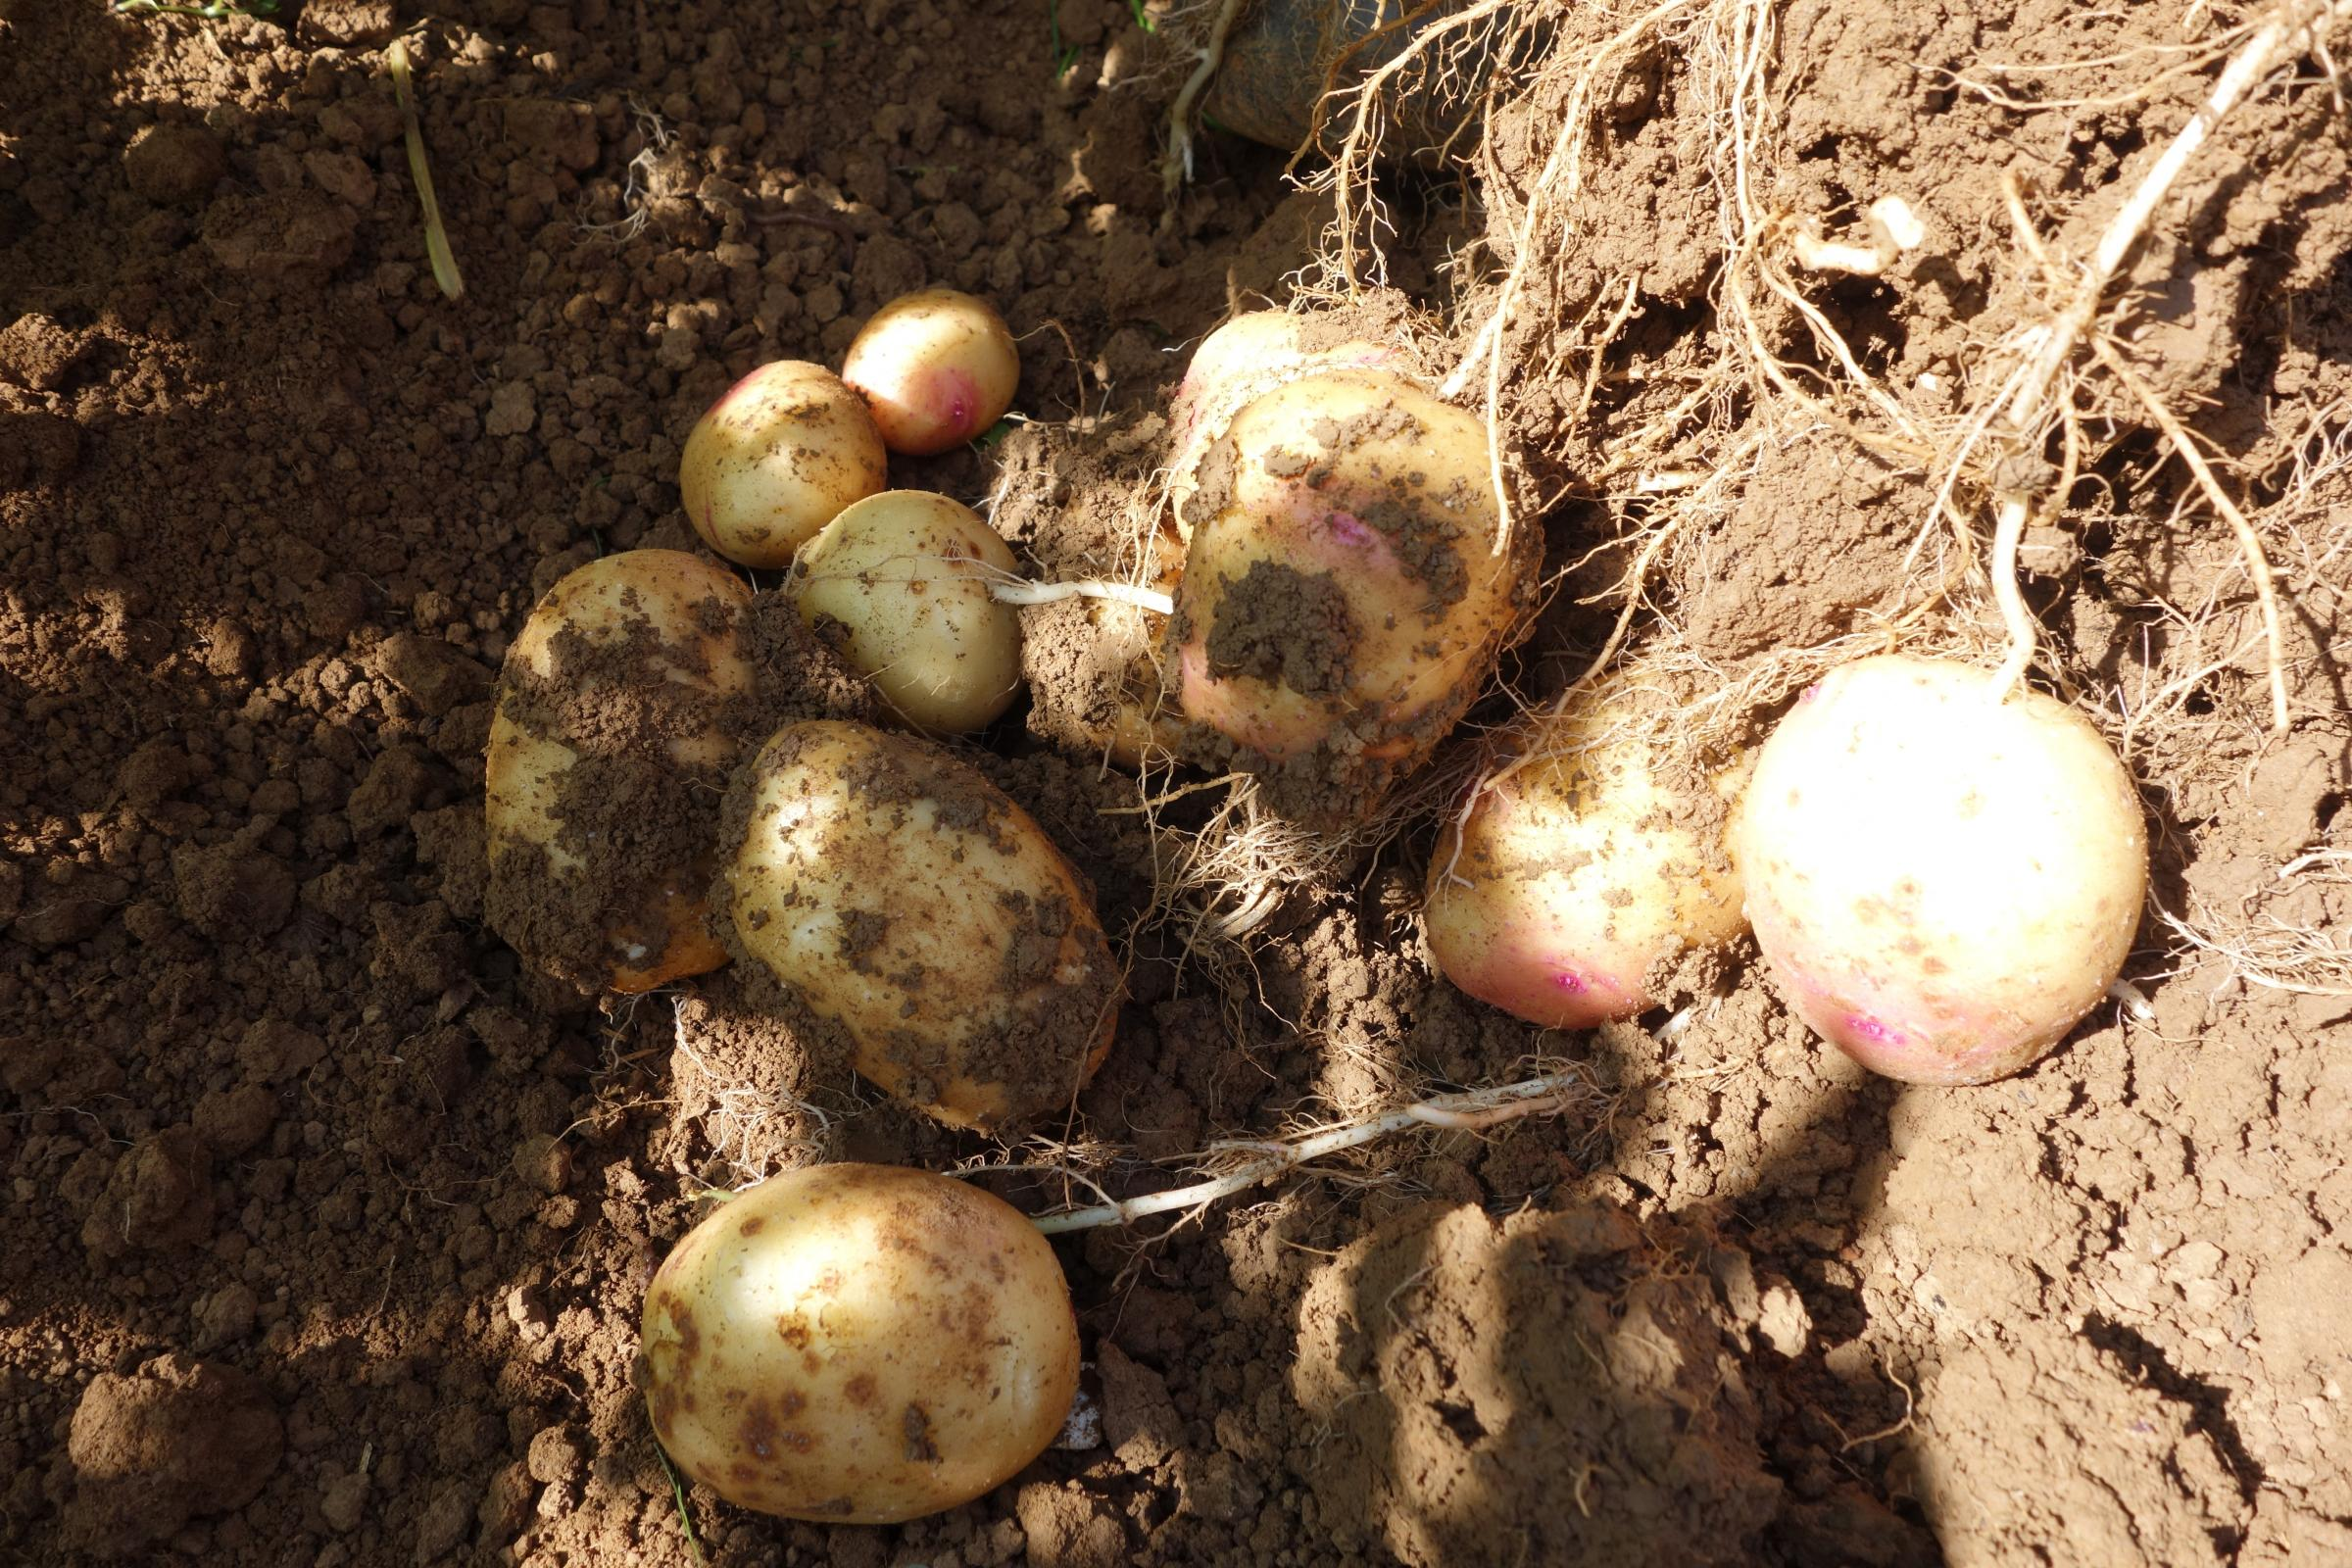 Assessing tubers in the drill before harvest